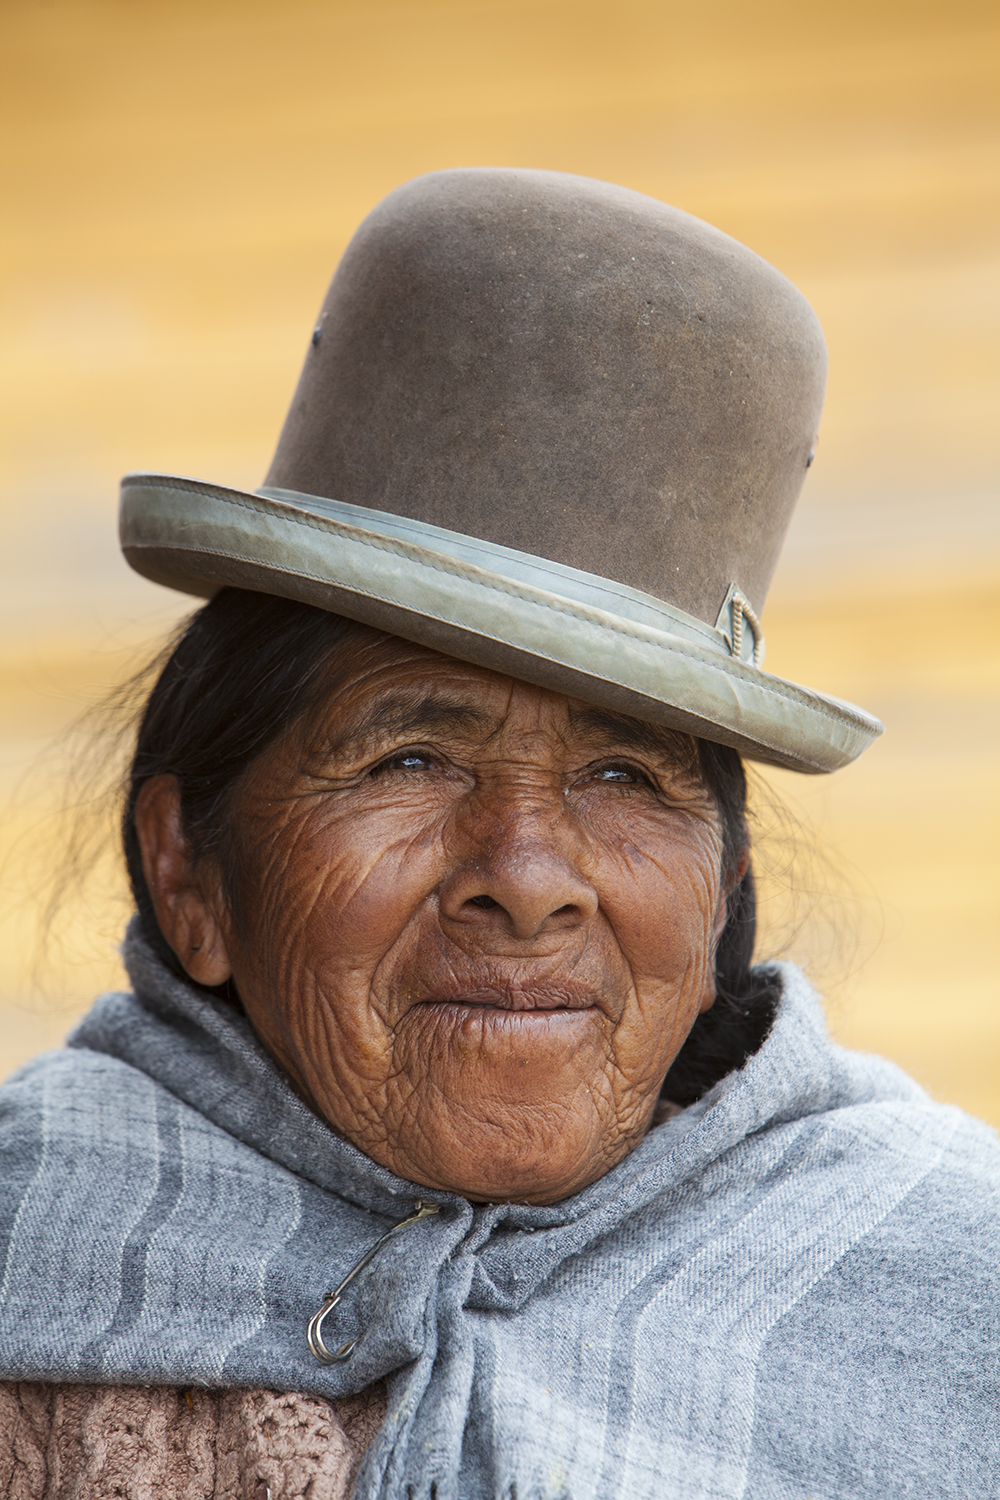 Bolivia is the poorest country in South America and home to the largest indigenous population in the world.